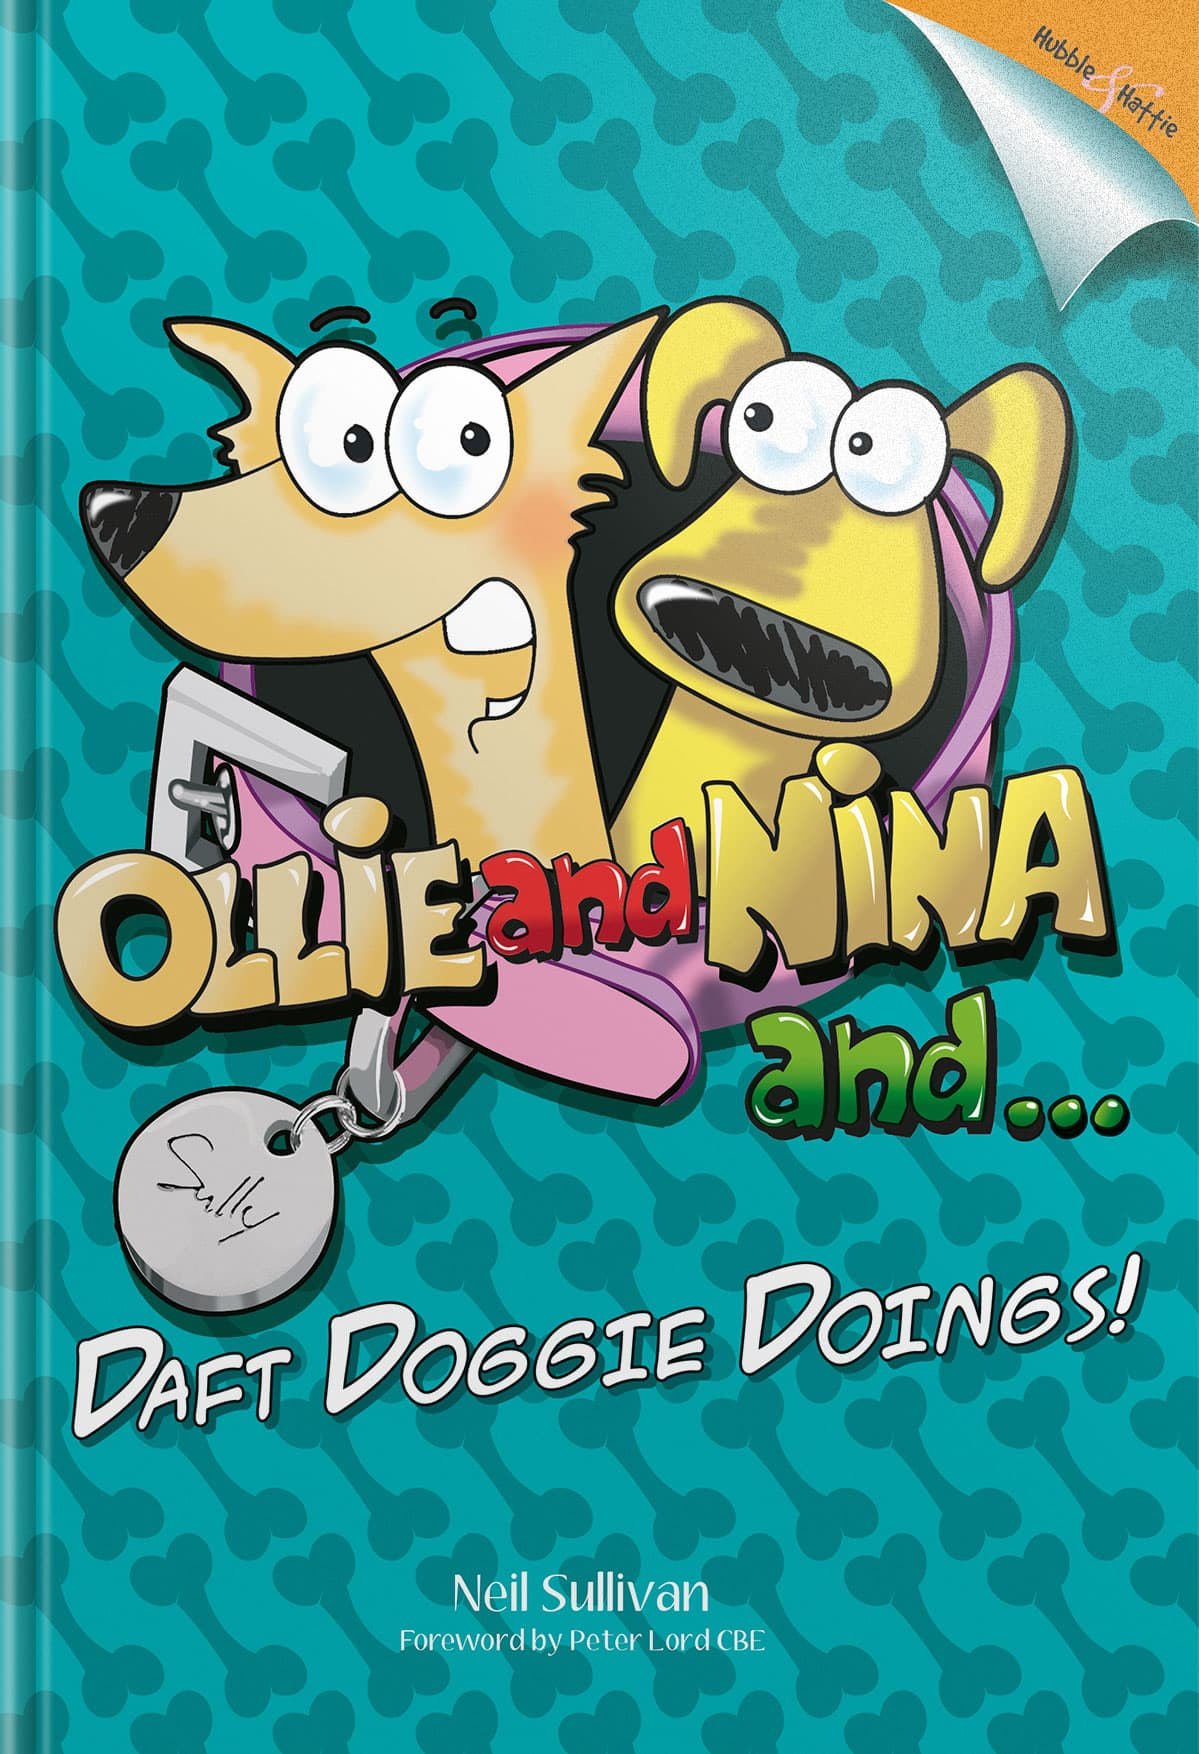 Ollie and Nina and … – … daft doggy doings!